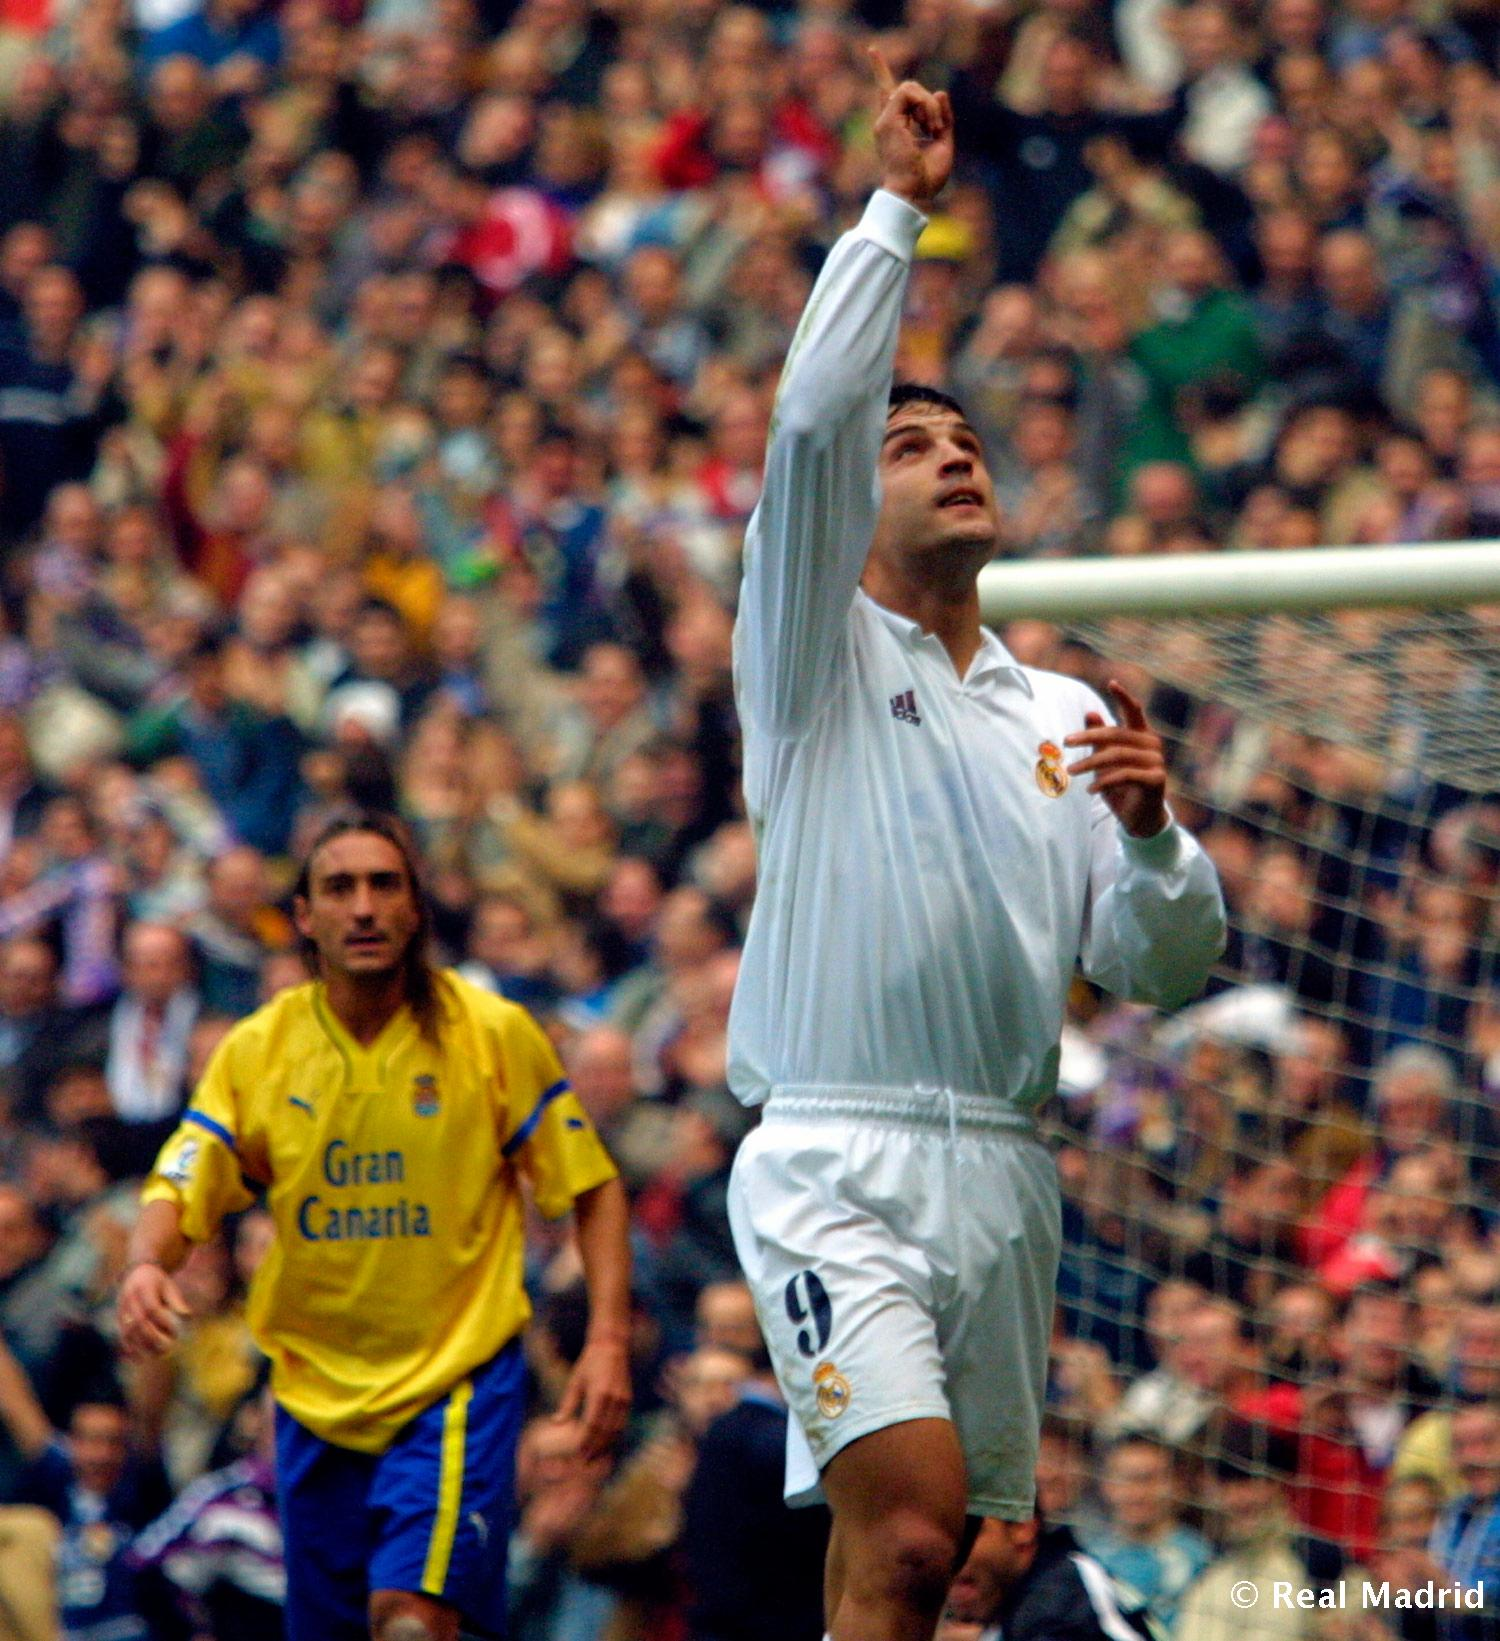 Real Madrid - Morientes 6 - 03-04-2015